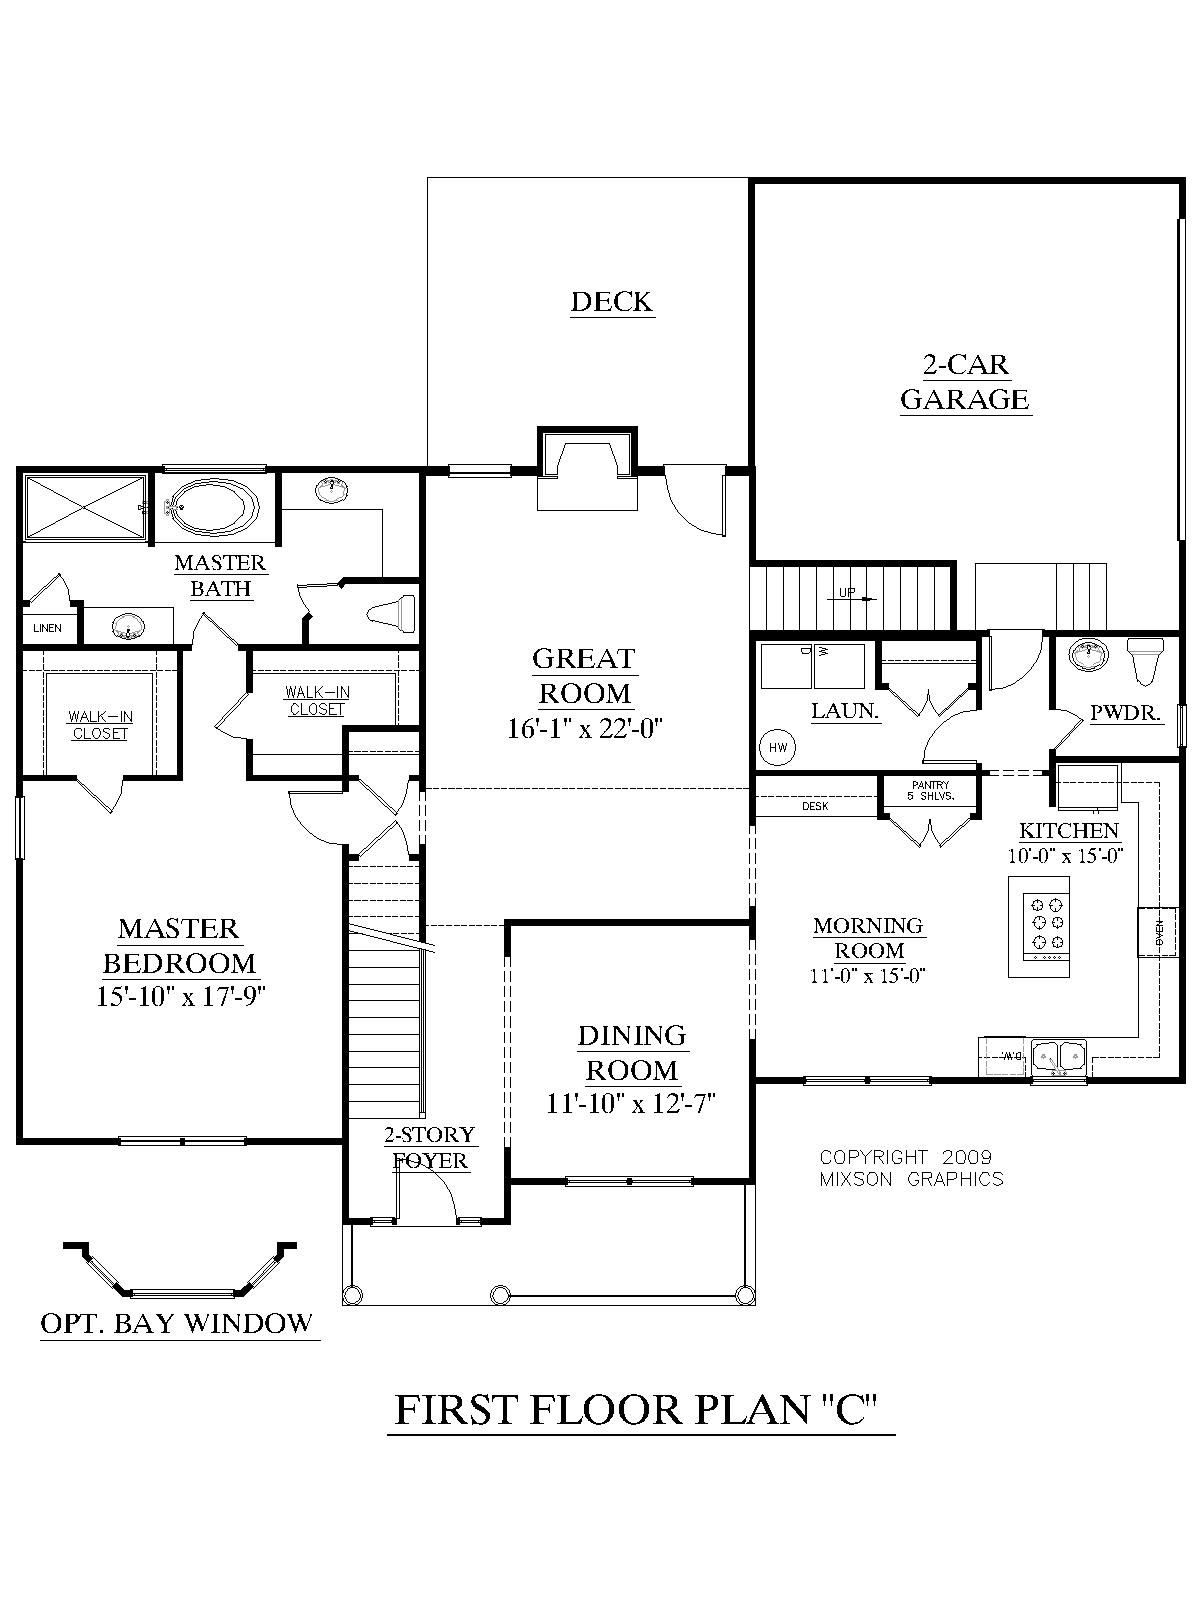 House Plan 2675 C Longcreek First Floor Traditional 2 Story With 4 Bedrooms Master Bedroom Downstairs And 3 Upstairs